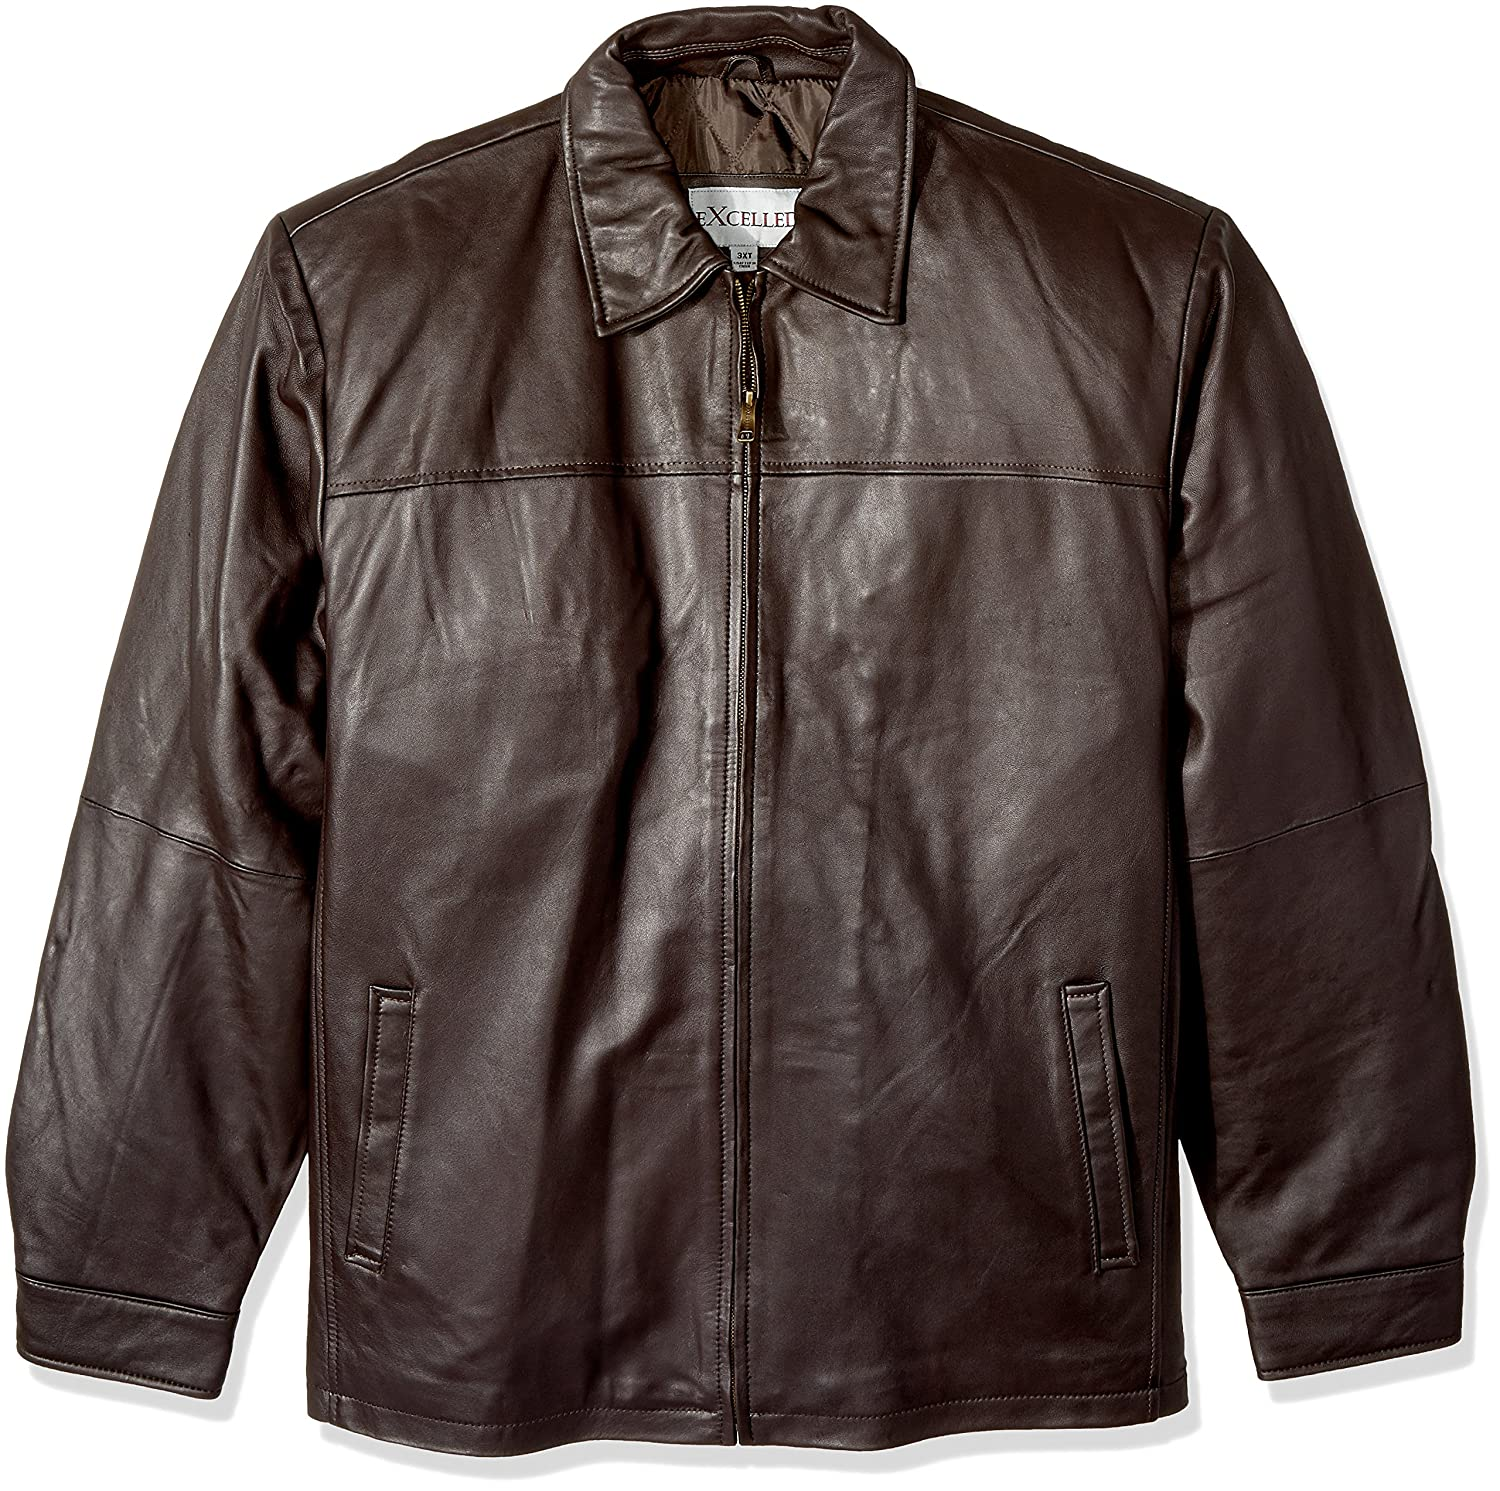 Excelled Men's Big and Tall New Zealand Lambskin Leather Classic Open Bottom Jacket Excelled Apparel M2000